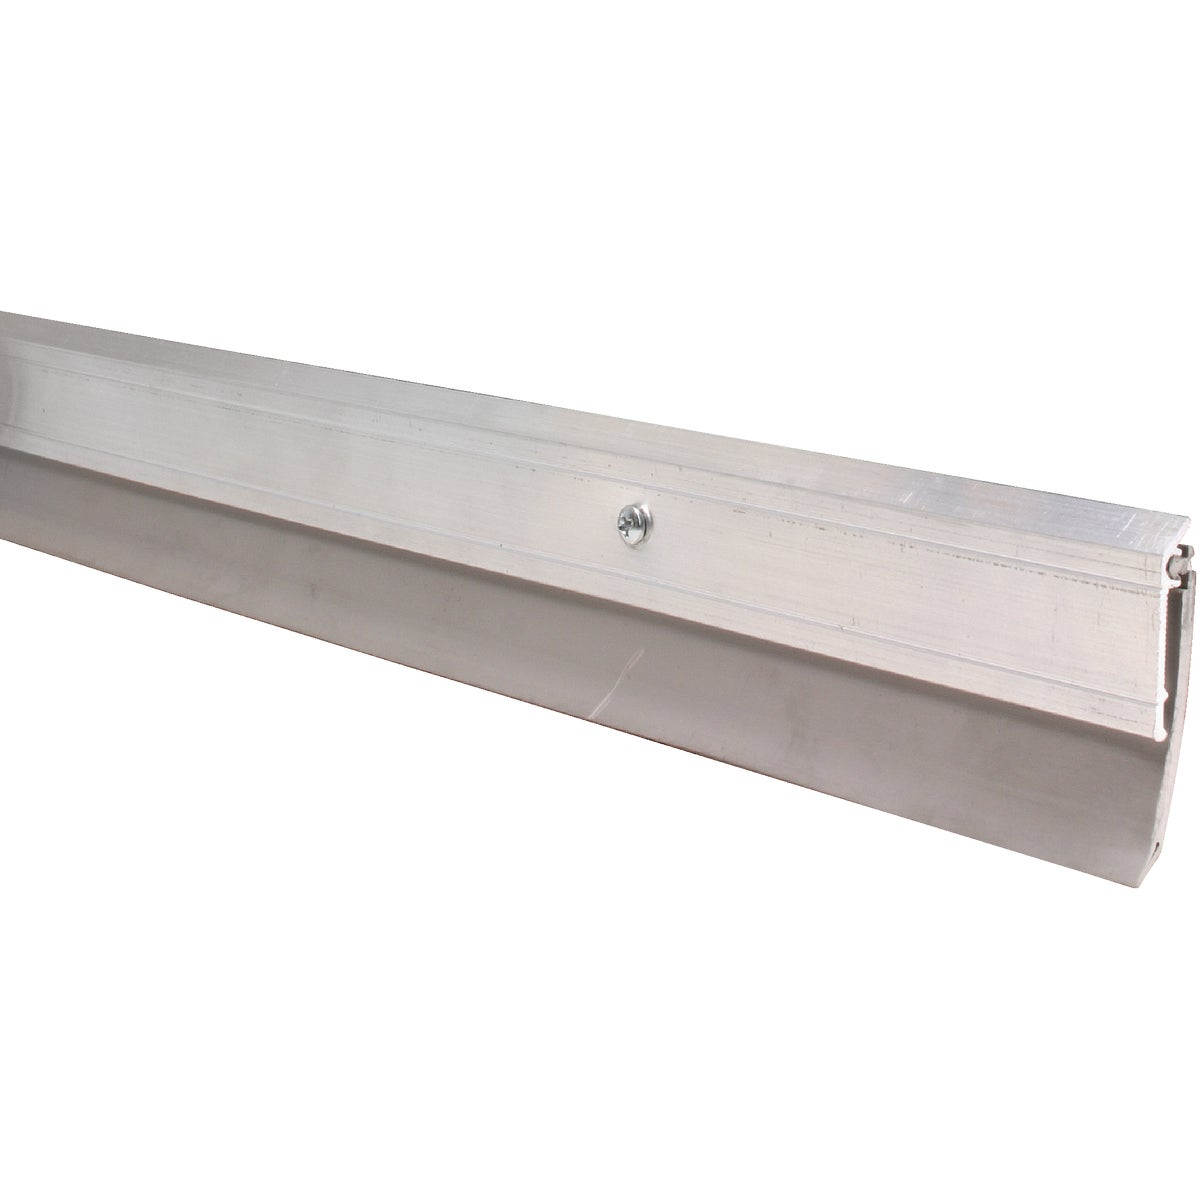 "48"" ALUM EXV DOOR SWEEP - 05413 by M D Building Prod"